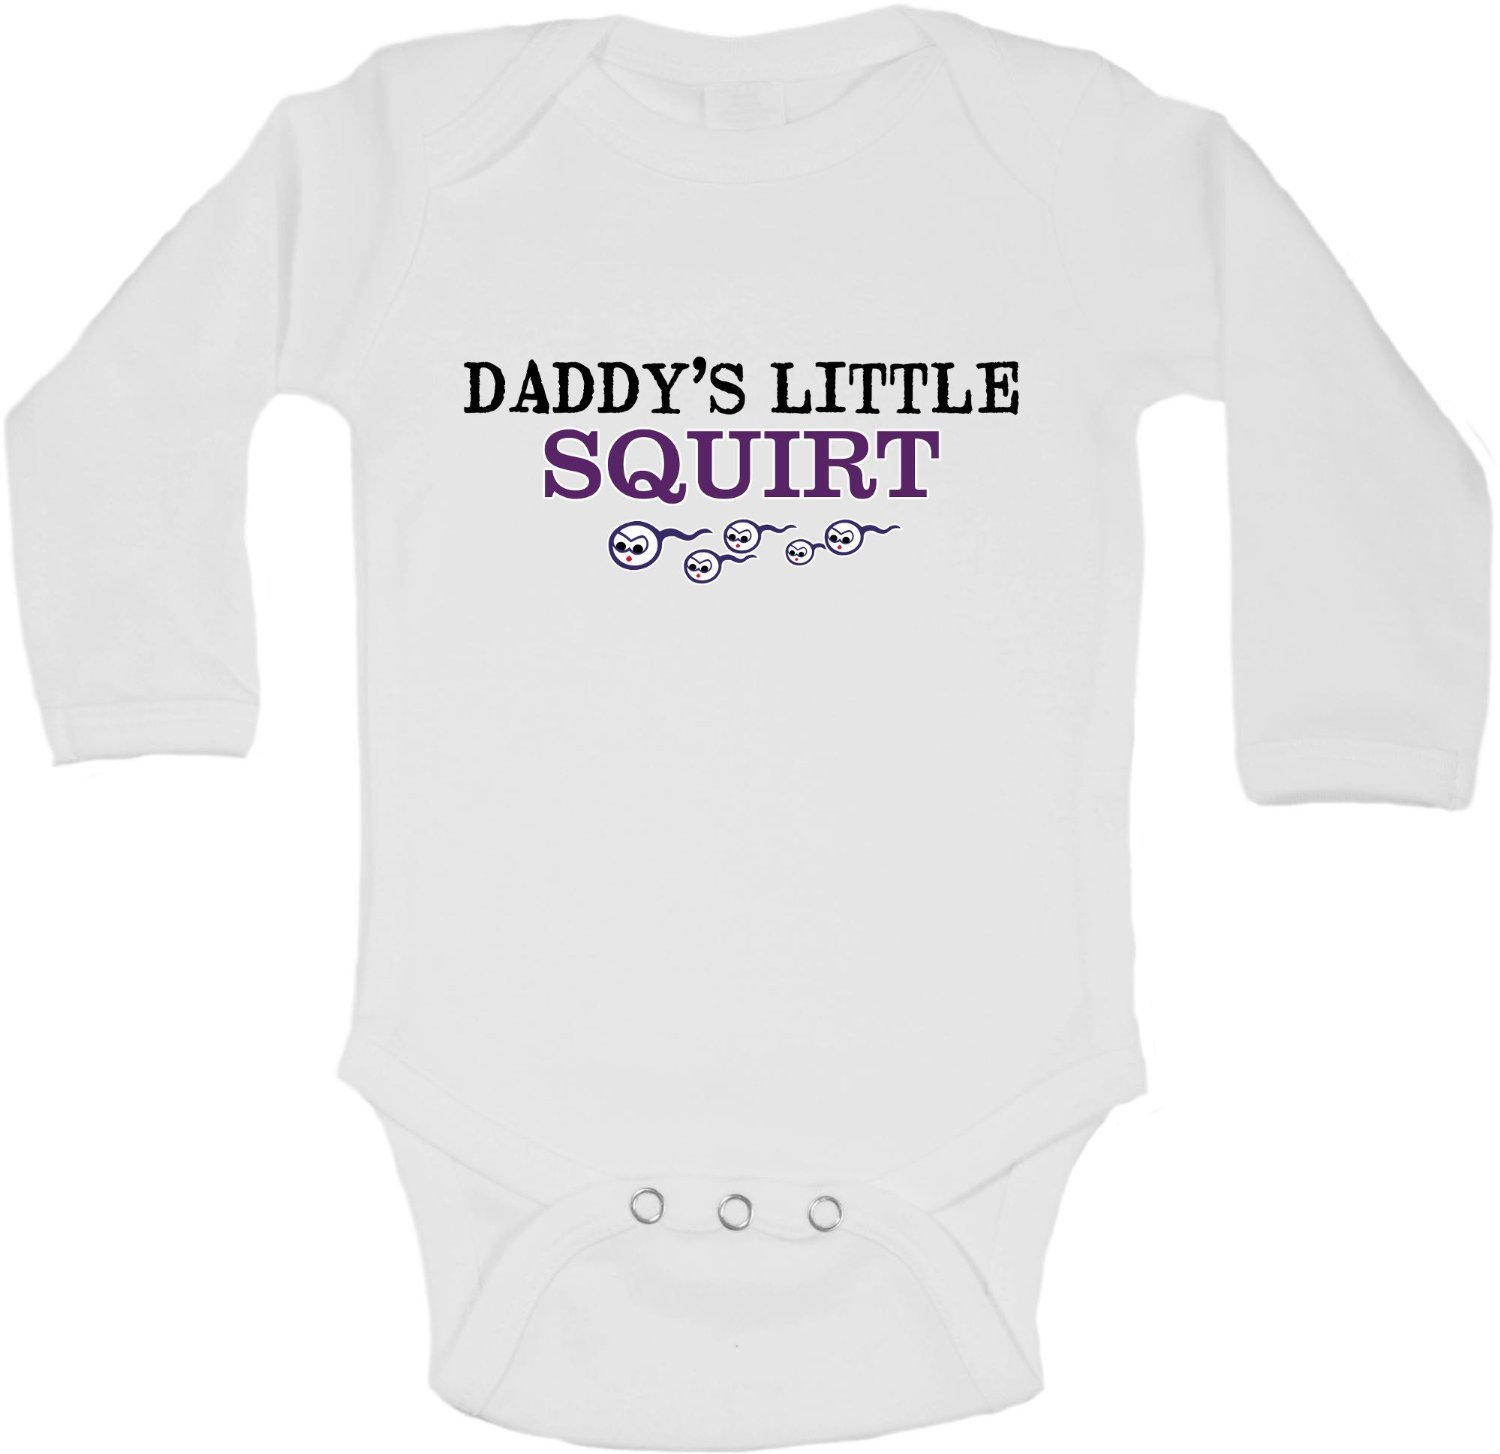 Daddys Little Squirt Personalized Long Sleeve Baby Vests Bodysuits Unisex White